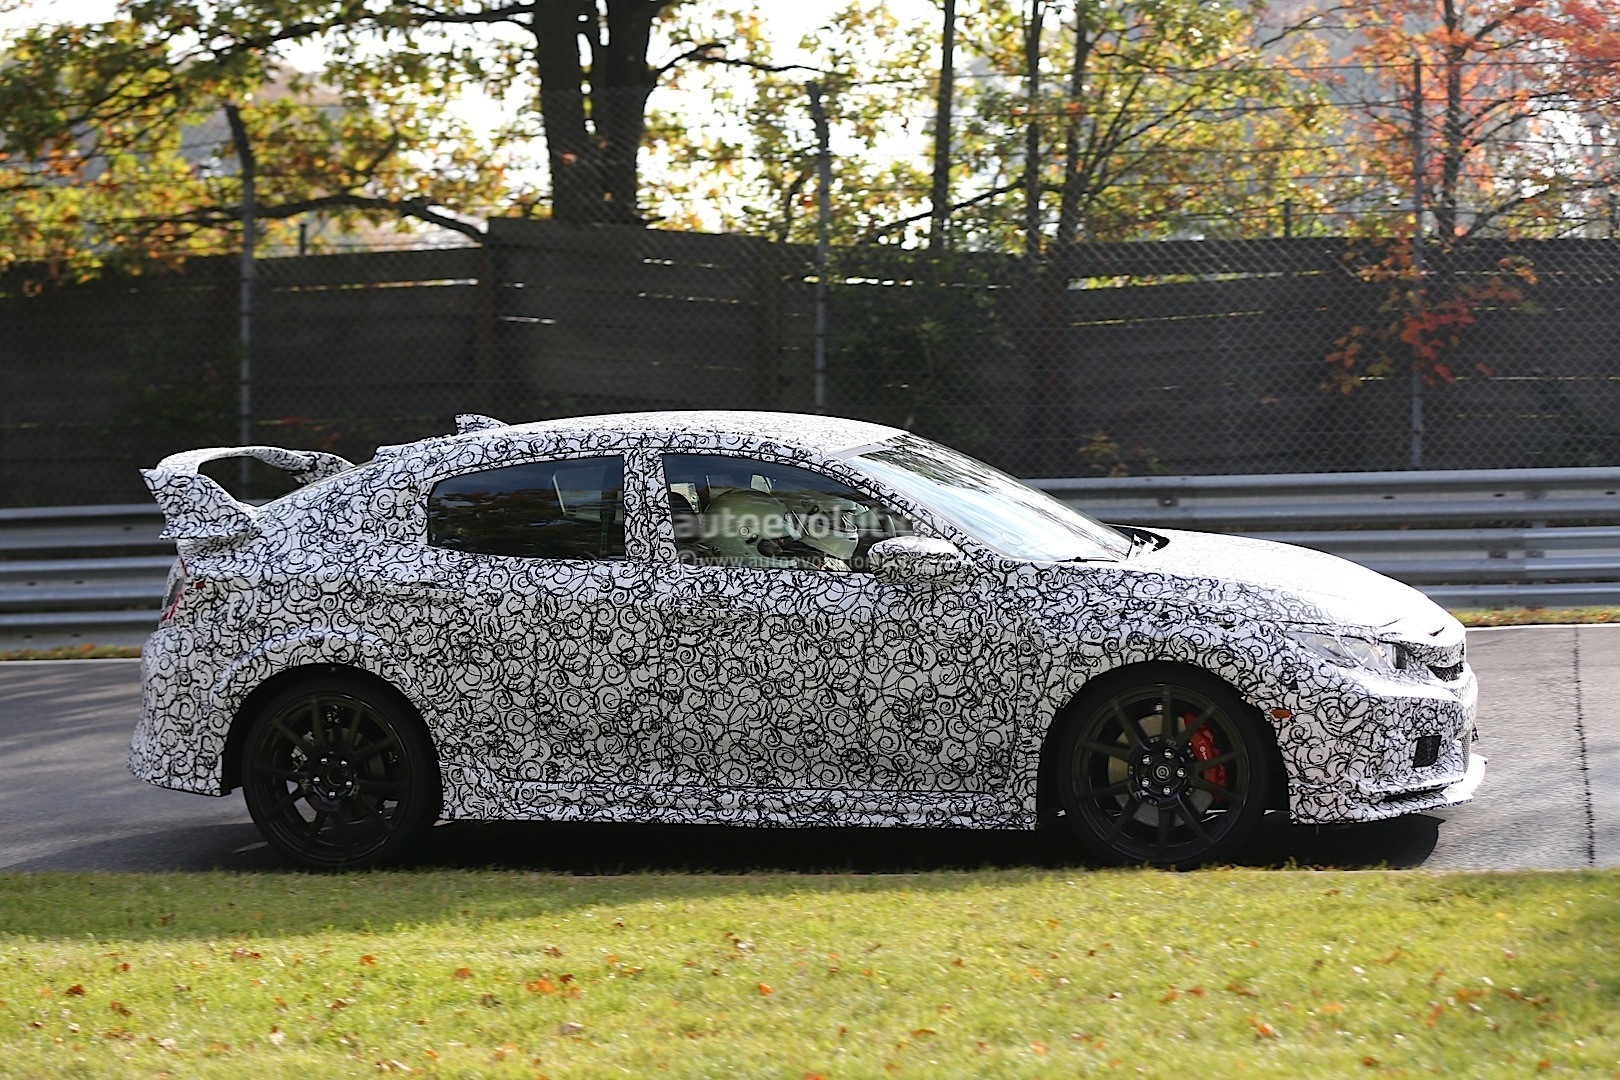 2017 honda civic announced with 1 liter and 1 5 liter vtec turbo engines autoevolution